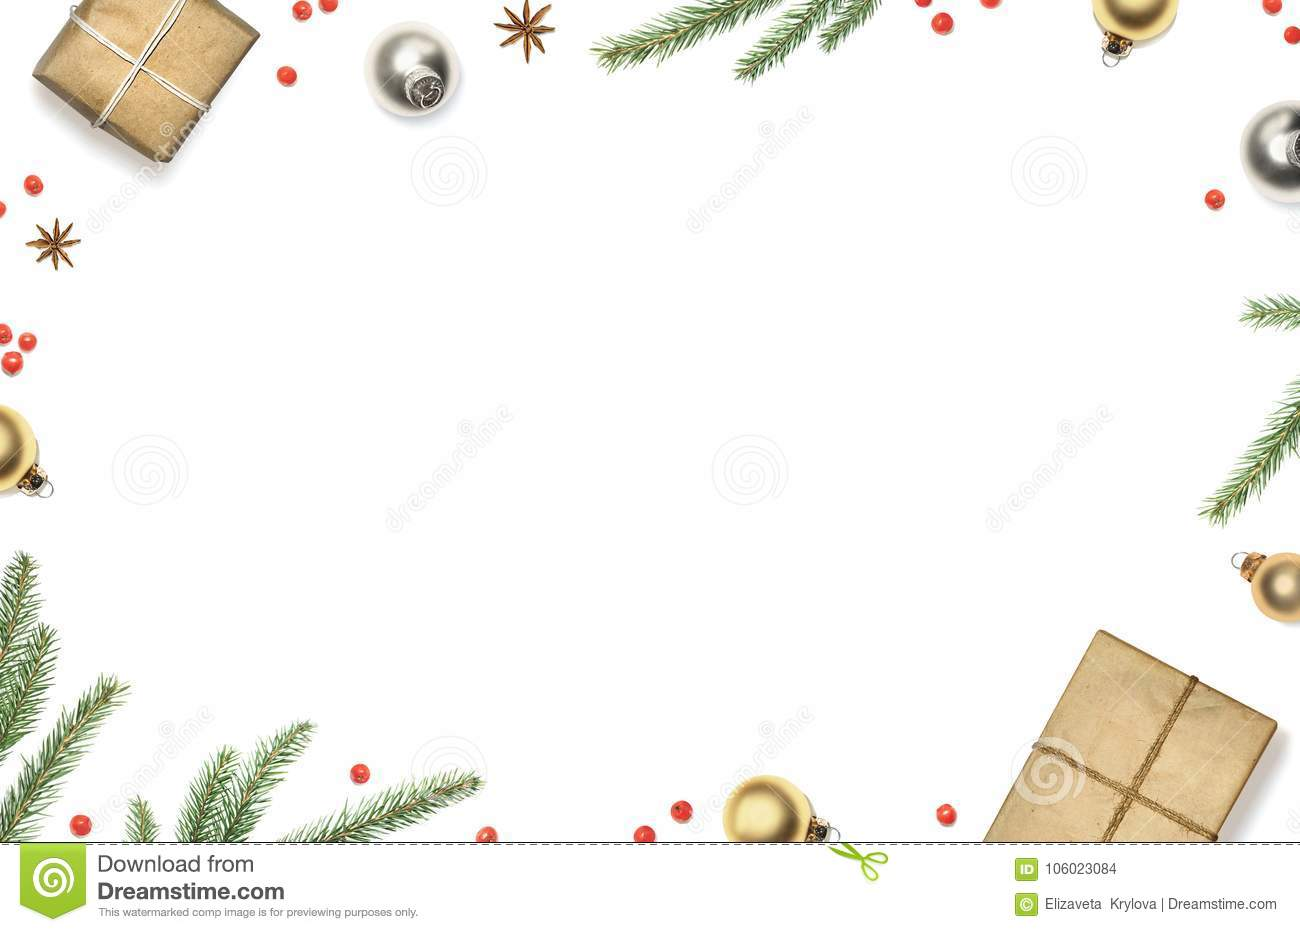 Christmas Composition With Gift Boxes Decorations Christmas Tree Branches And Red Berries Framed White Background Top View Stock Photo Image Of Branch Gold 106023084